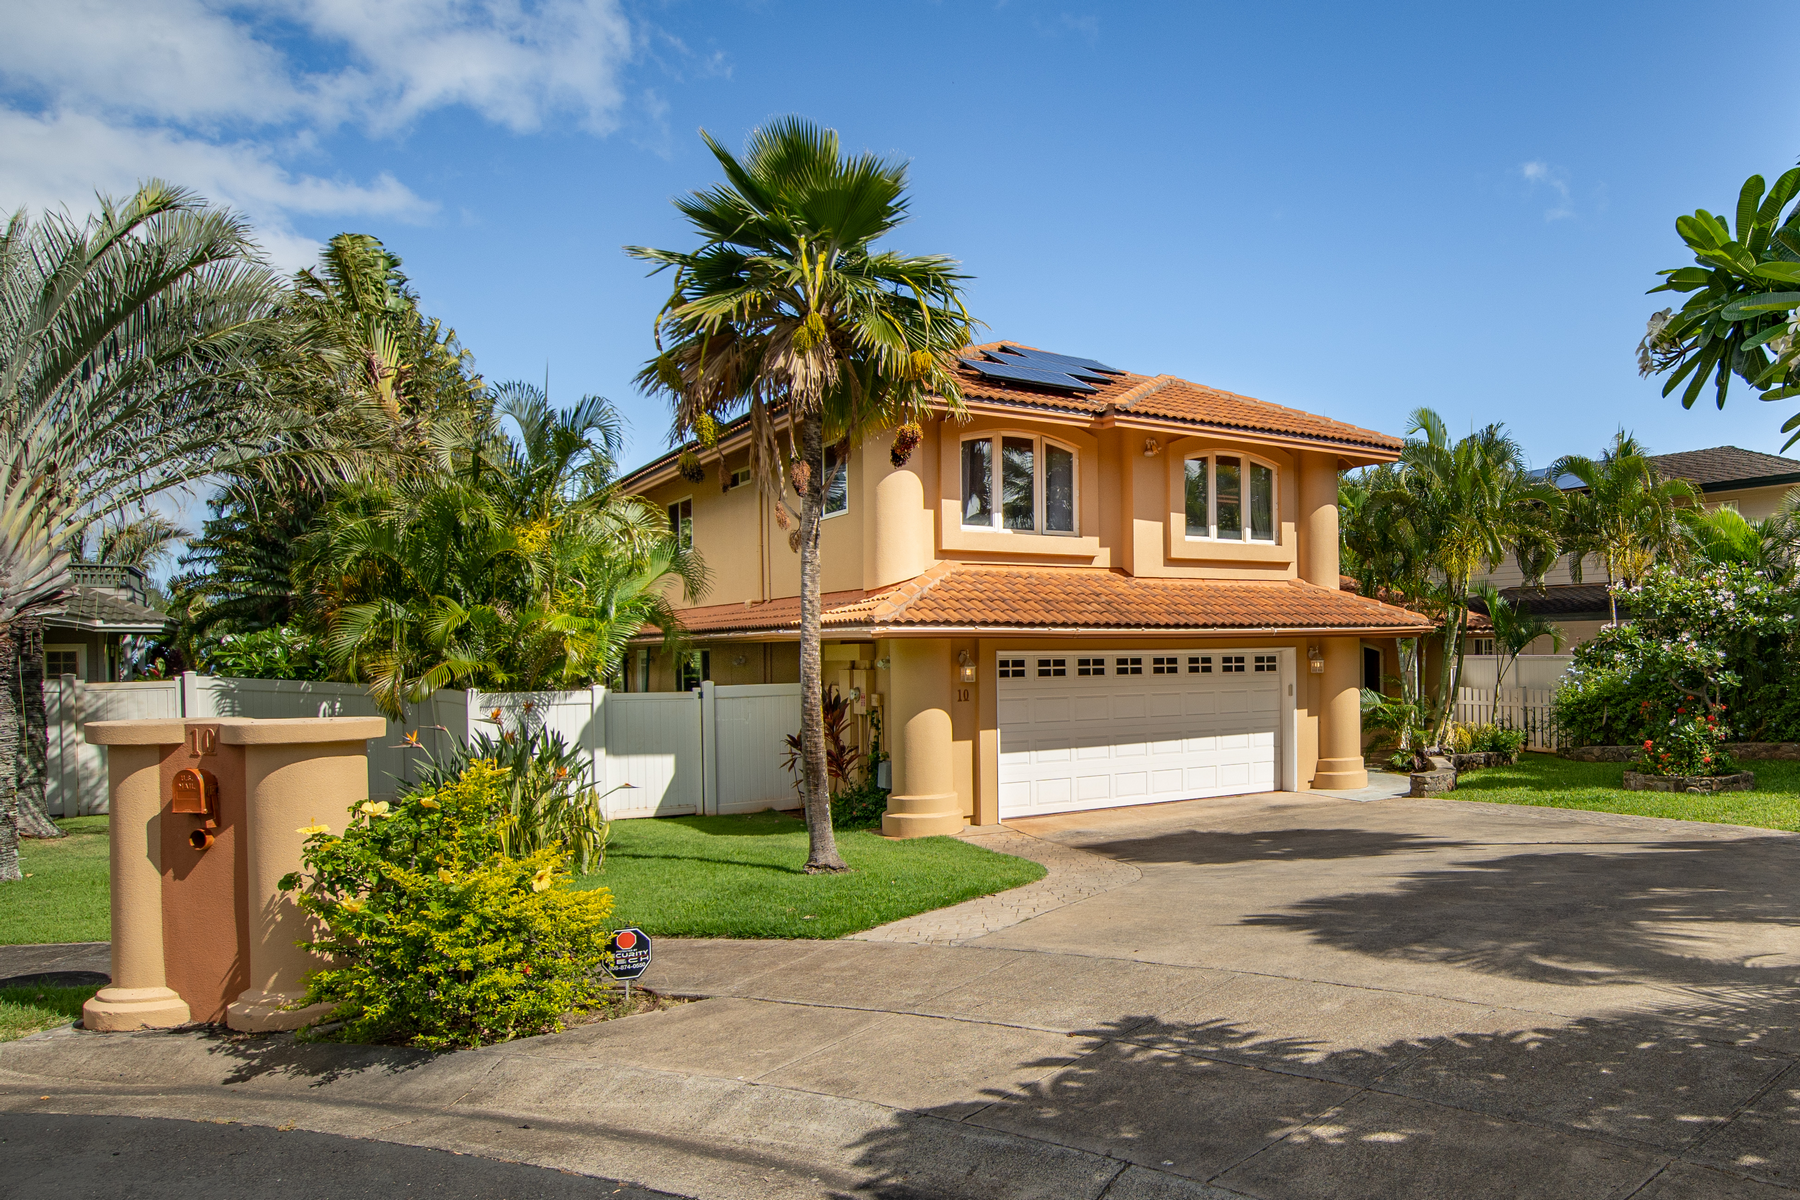 Single Family Homes for Active at Ocean and Island Views - Pool and Spa - Maui Lifestyle! 10 Bougainvillea Pl Kahana, Hawaii 96761 United States